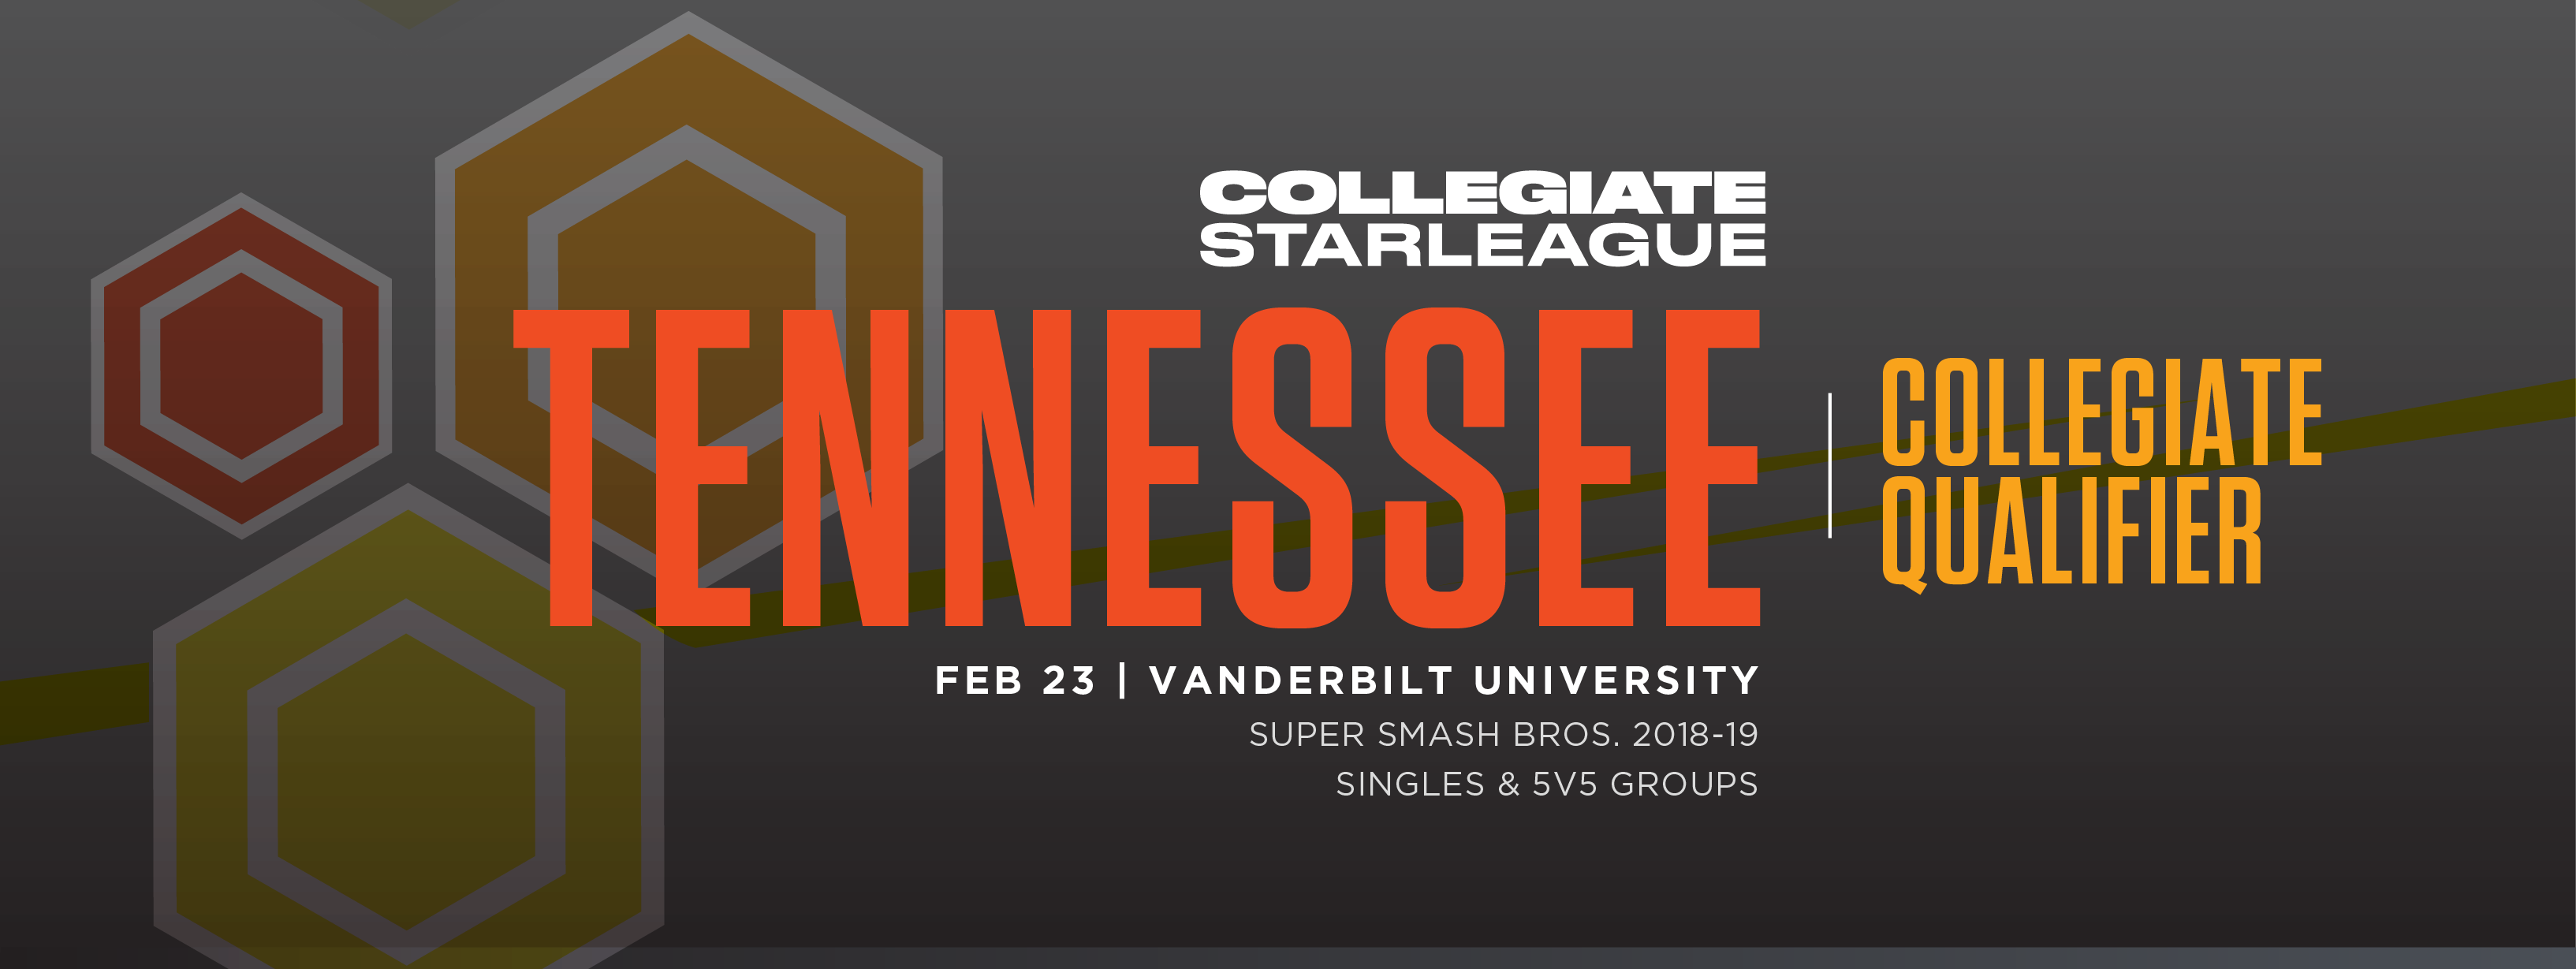 Smash local qualifier fb event image 2018 19 08